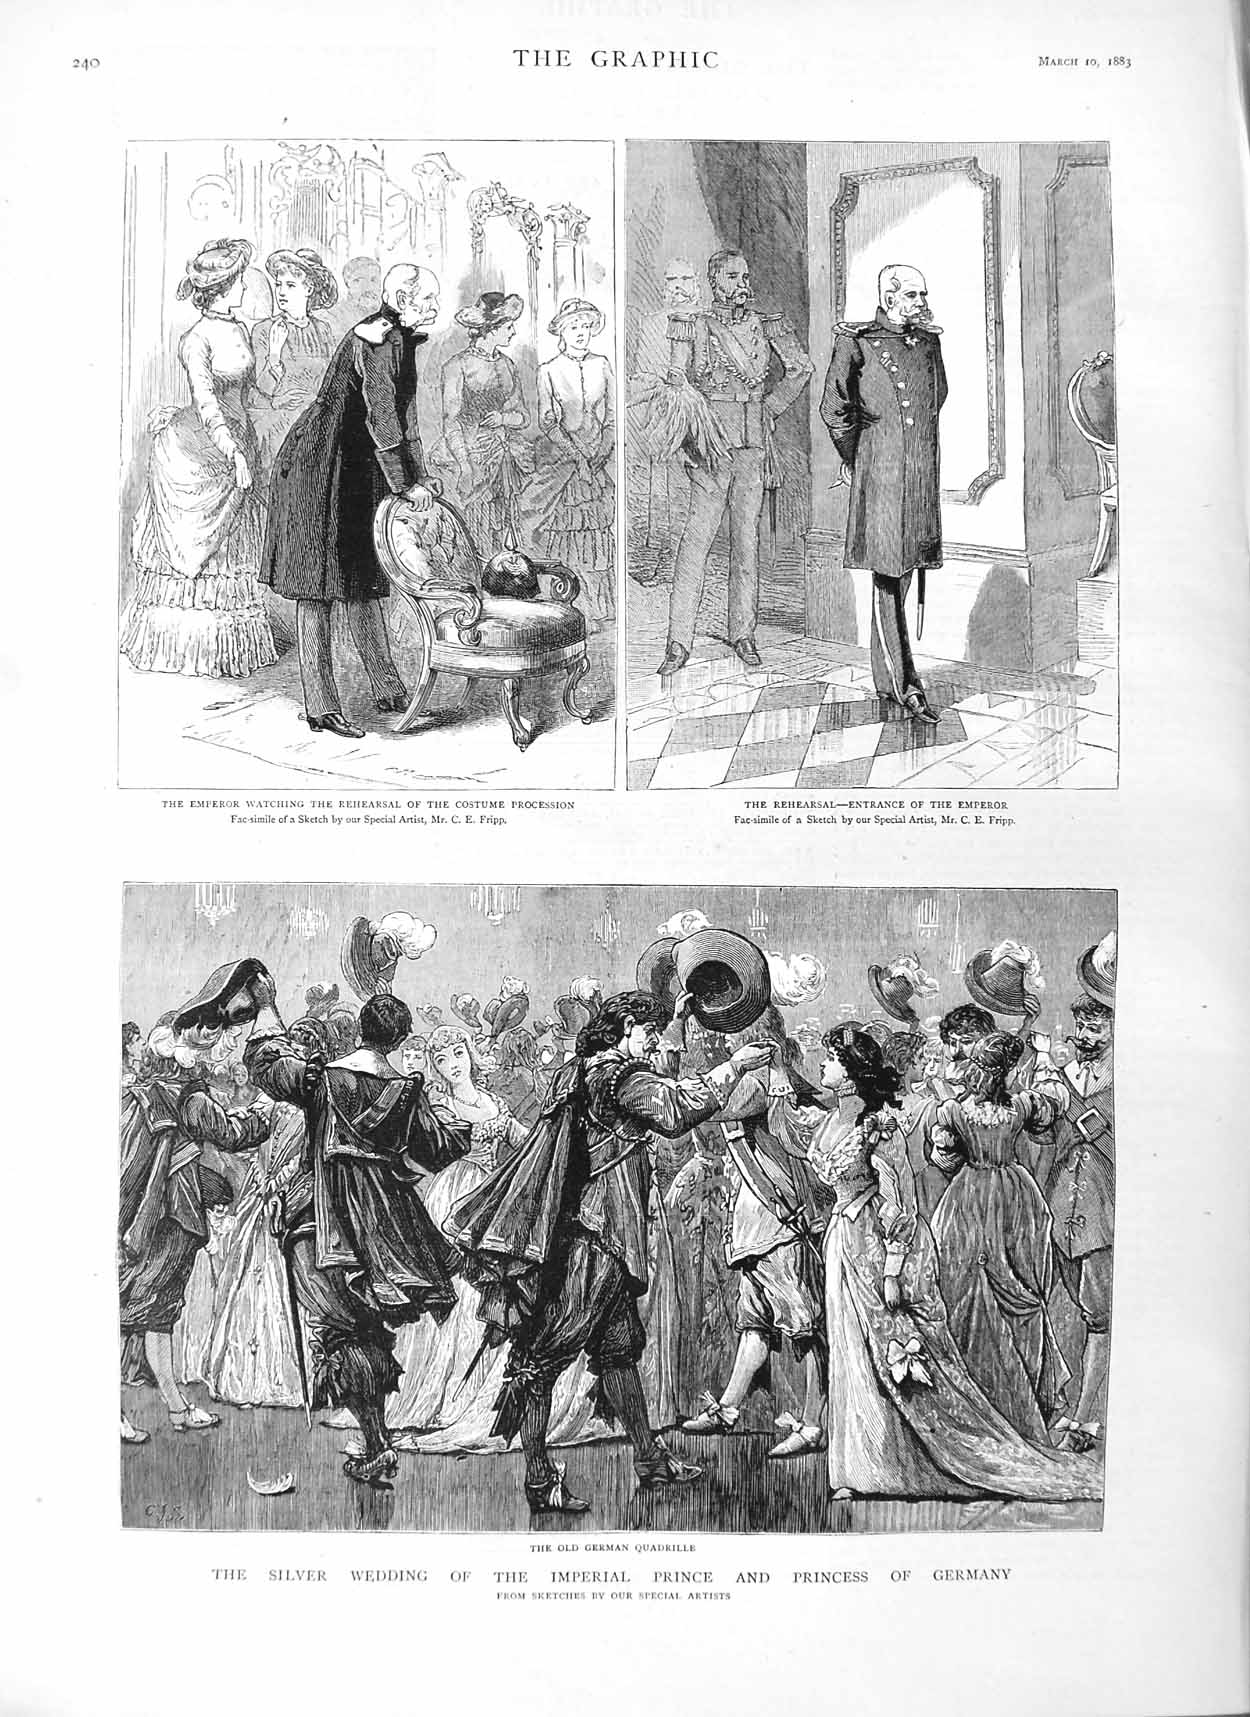 Print 1883 Silver Wedding Prince Germany Emperor Quadrille 240M127 Old Original